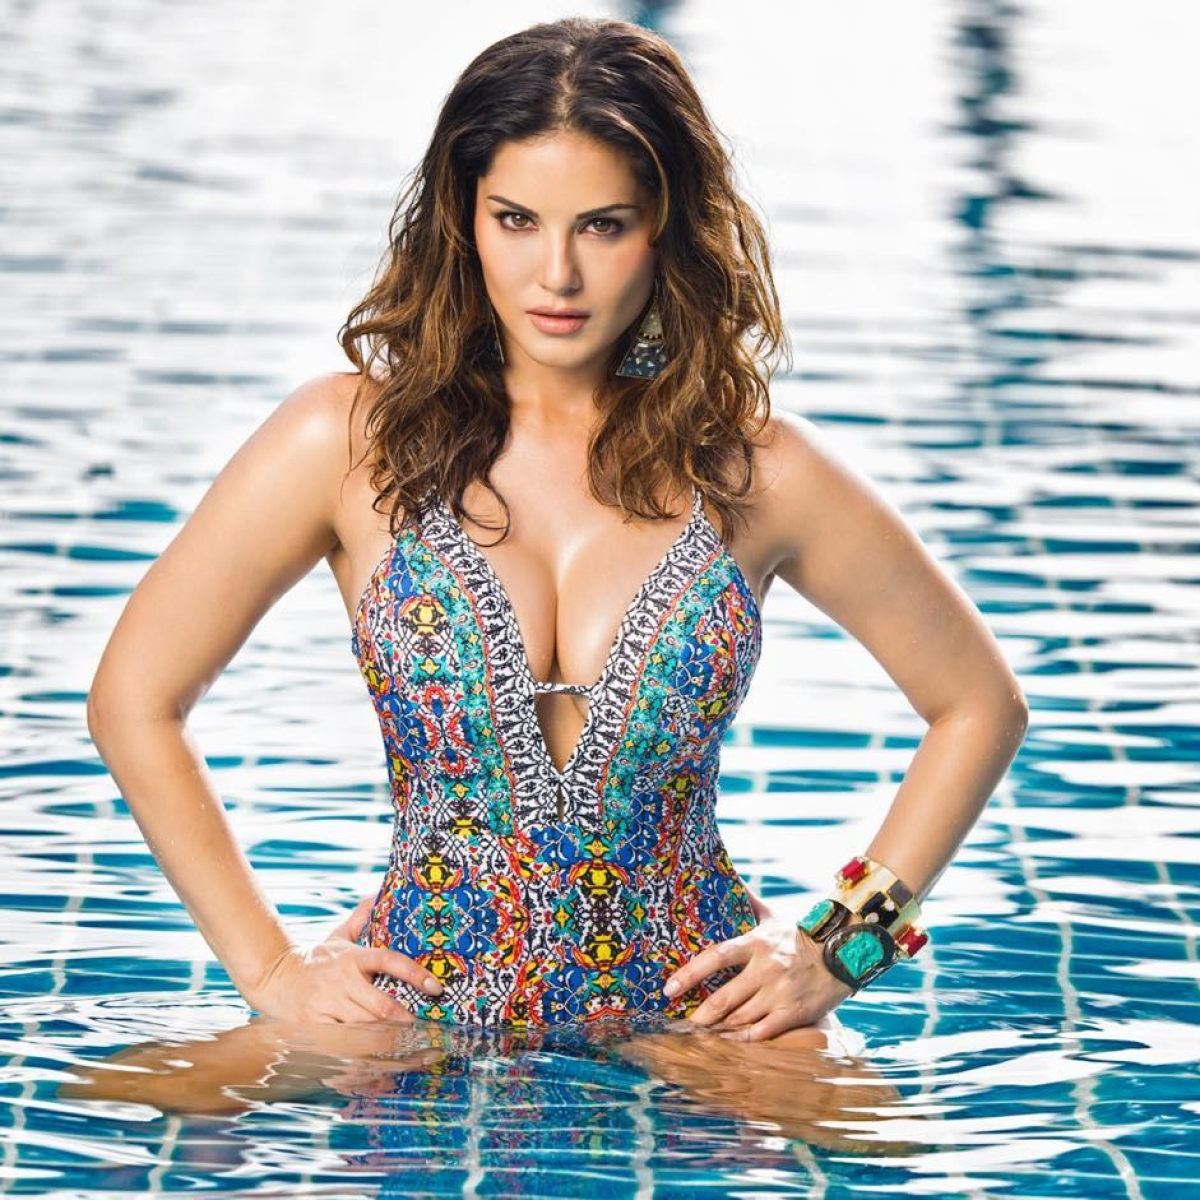 Locked up with Sunny Leone: From sharing monokini pics to live chats, here's how she is entertaining fans